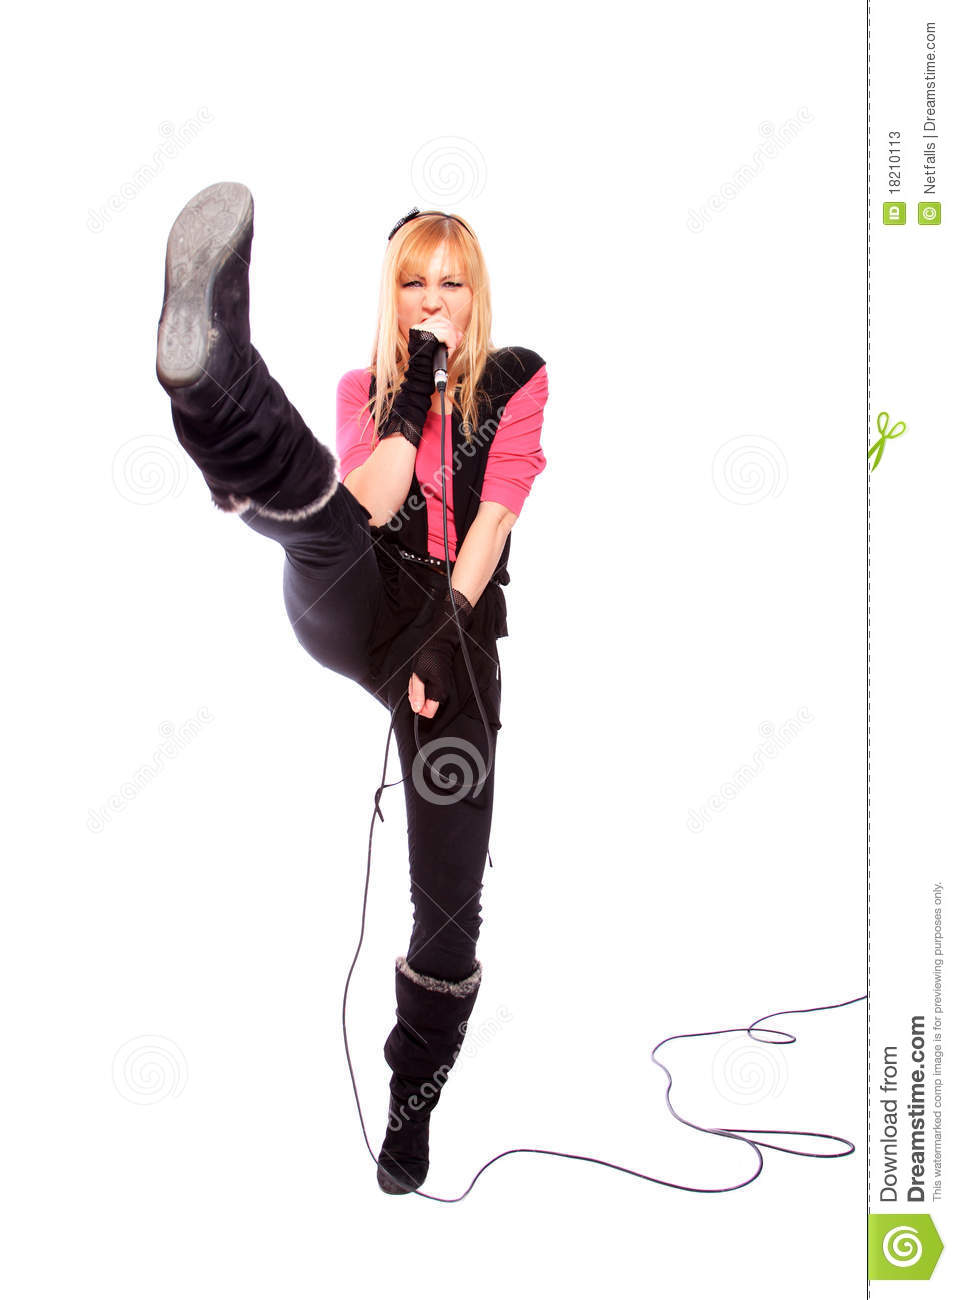 More similar stock images of portrait of female rock singer